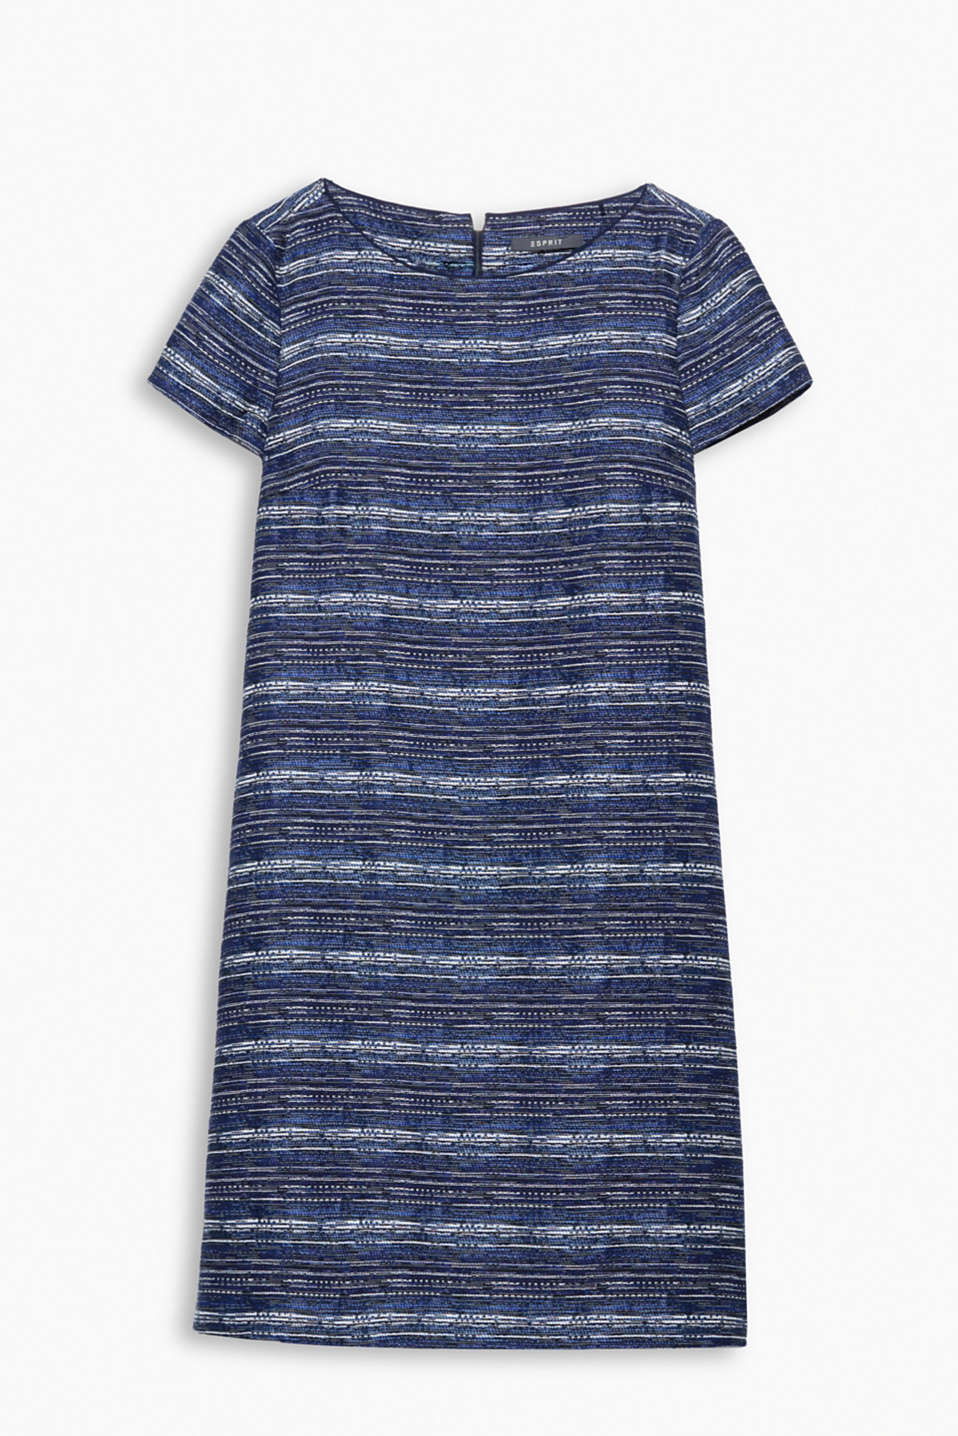 Mini dress with a round neckline and short sleeves in a finely woven cotton blend